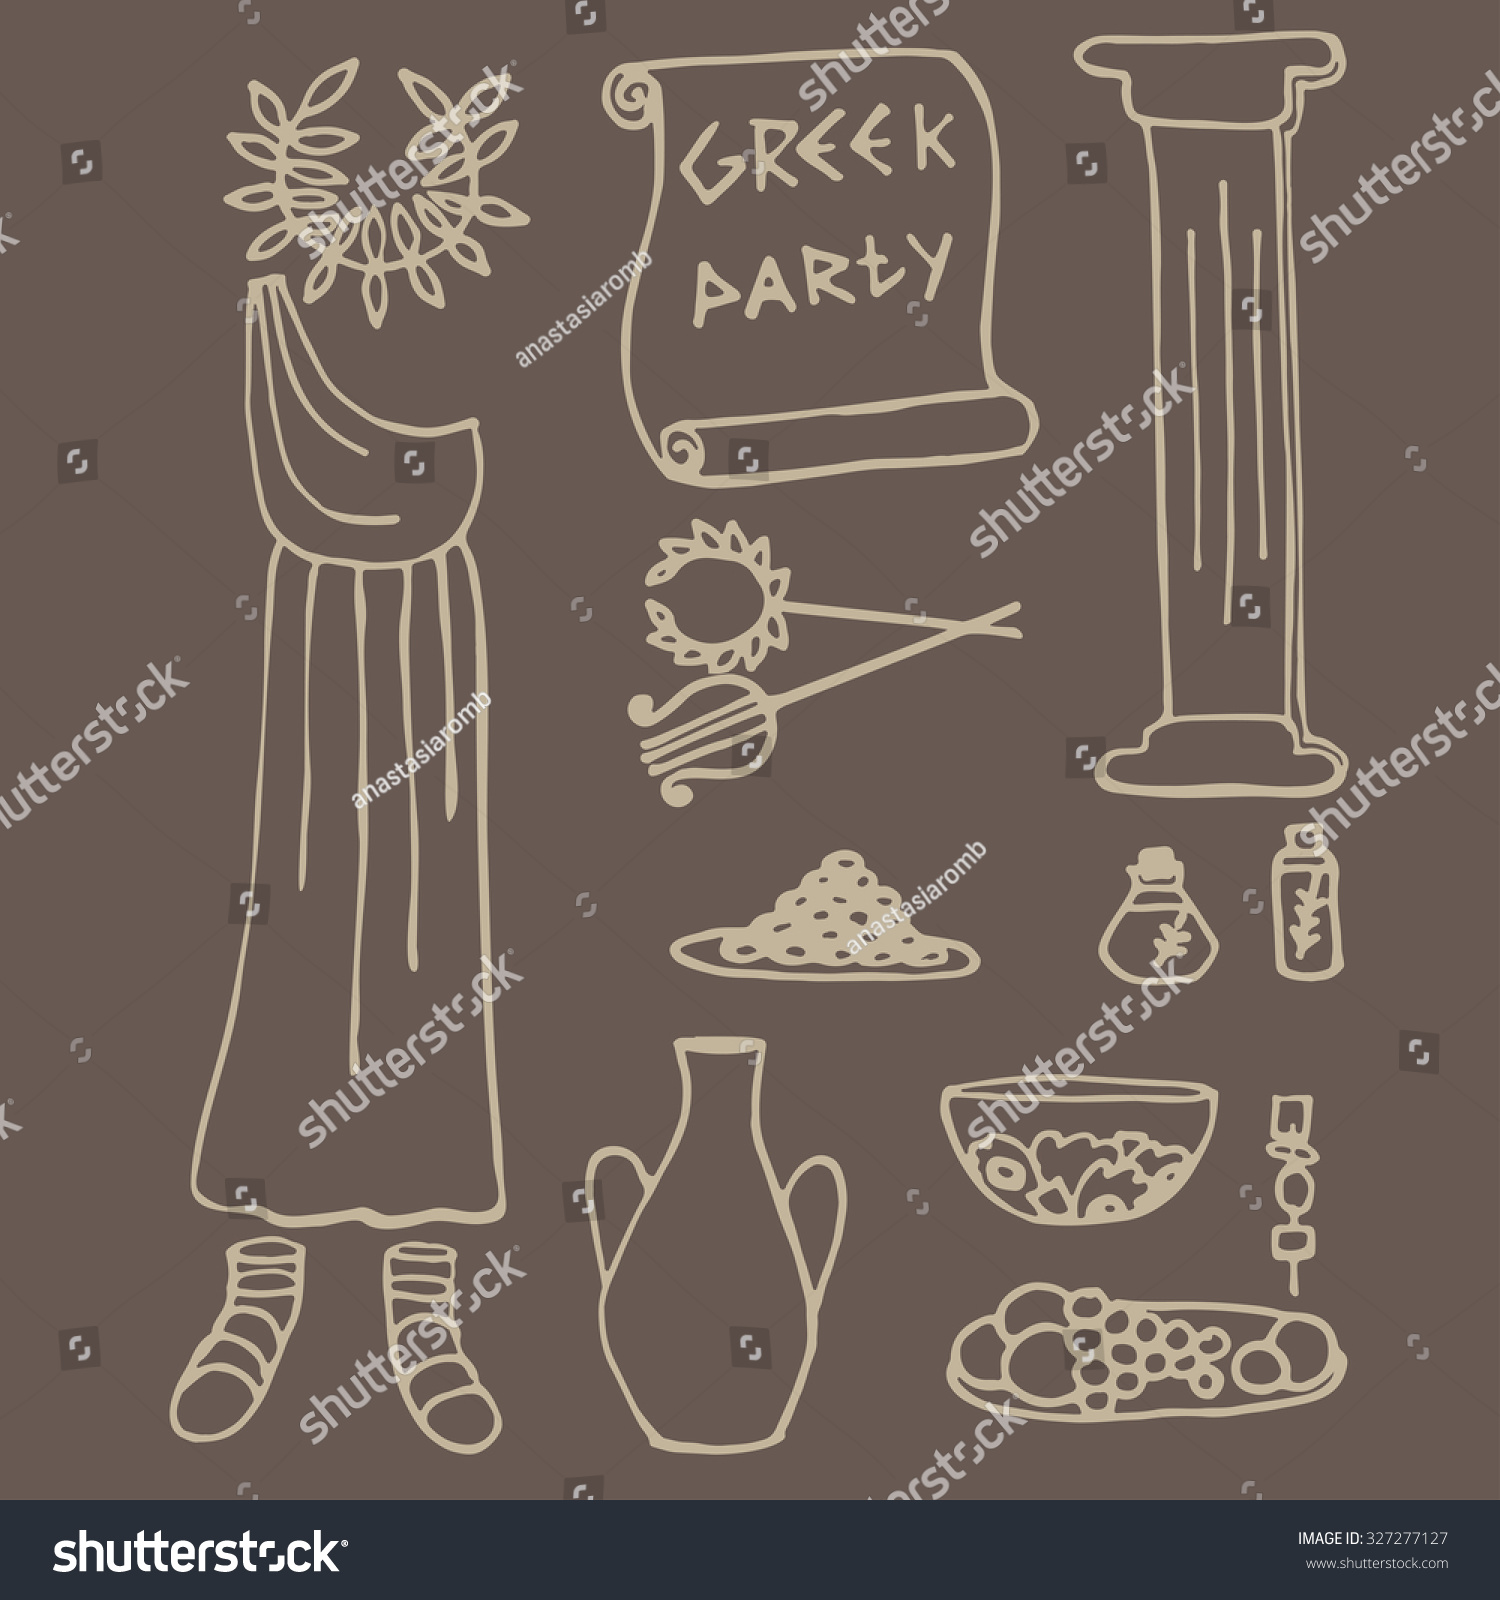 Doodle set ancient greek party ideas stock vector for Ancient greek decoration ideas